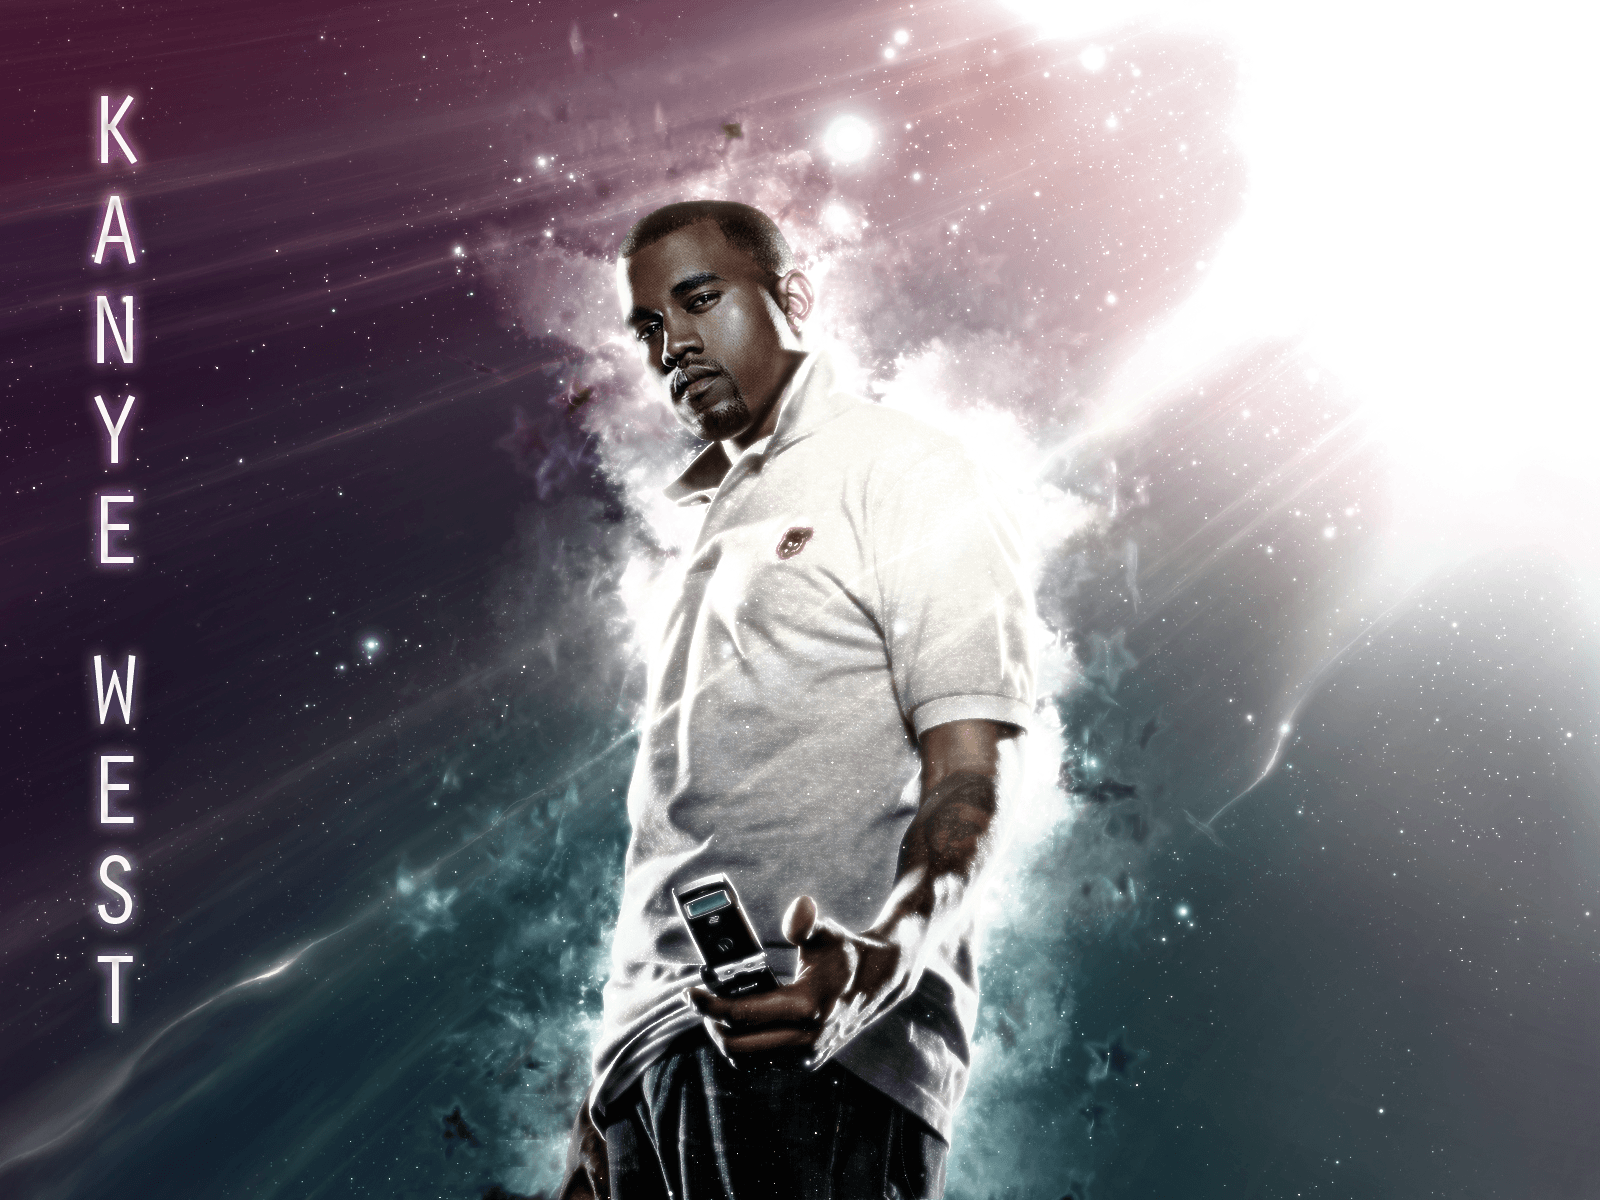 25 Remarkable Kanye Wallpaper Hd - 7te.org